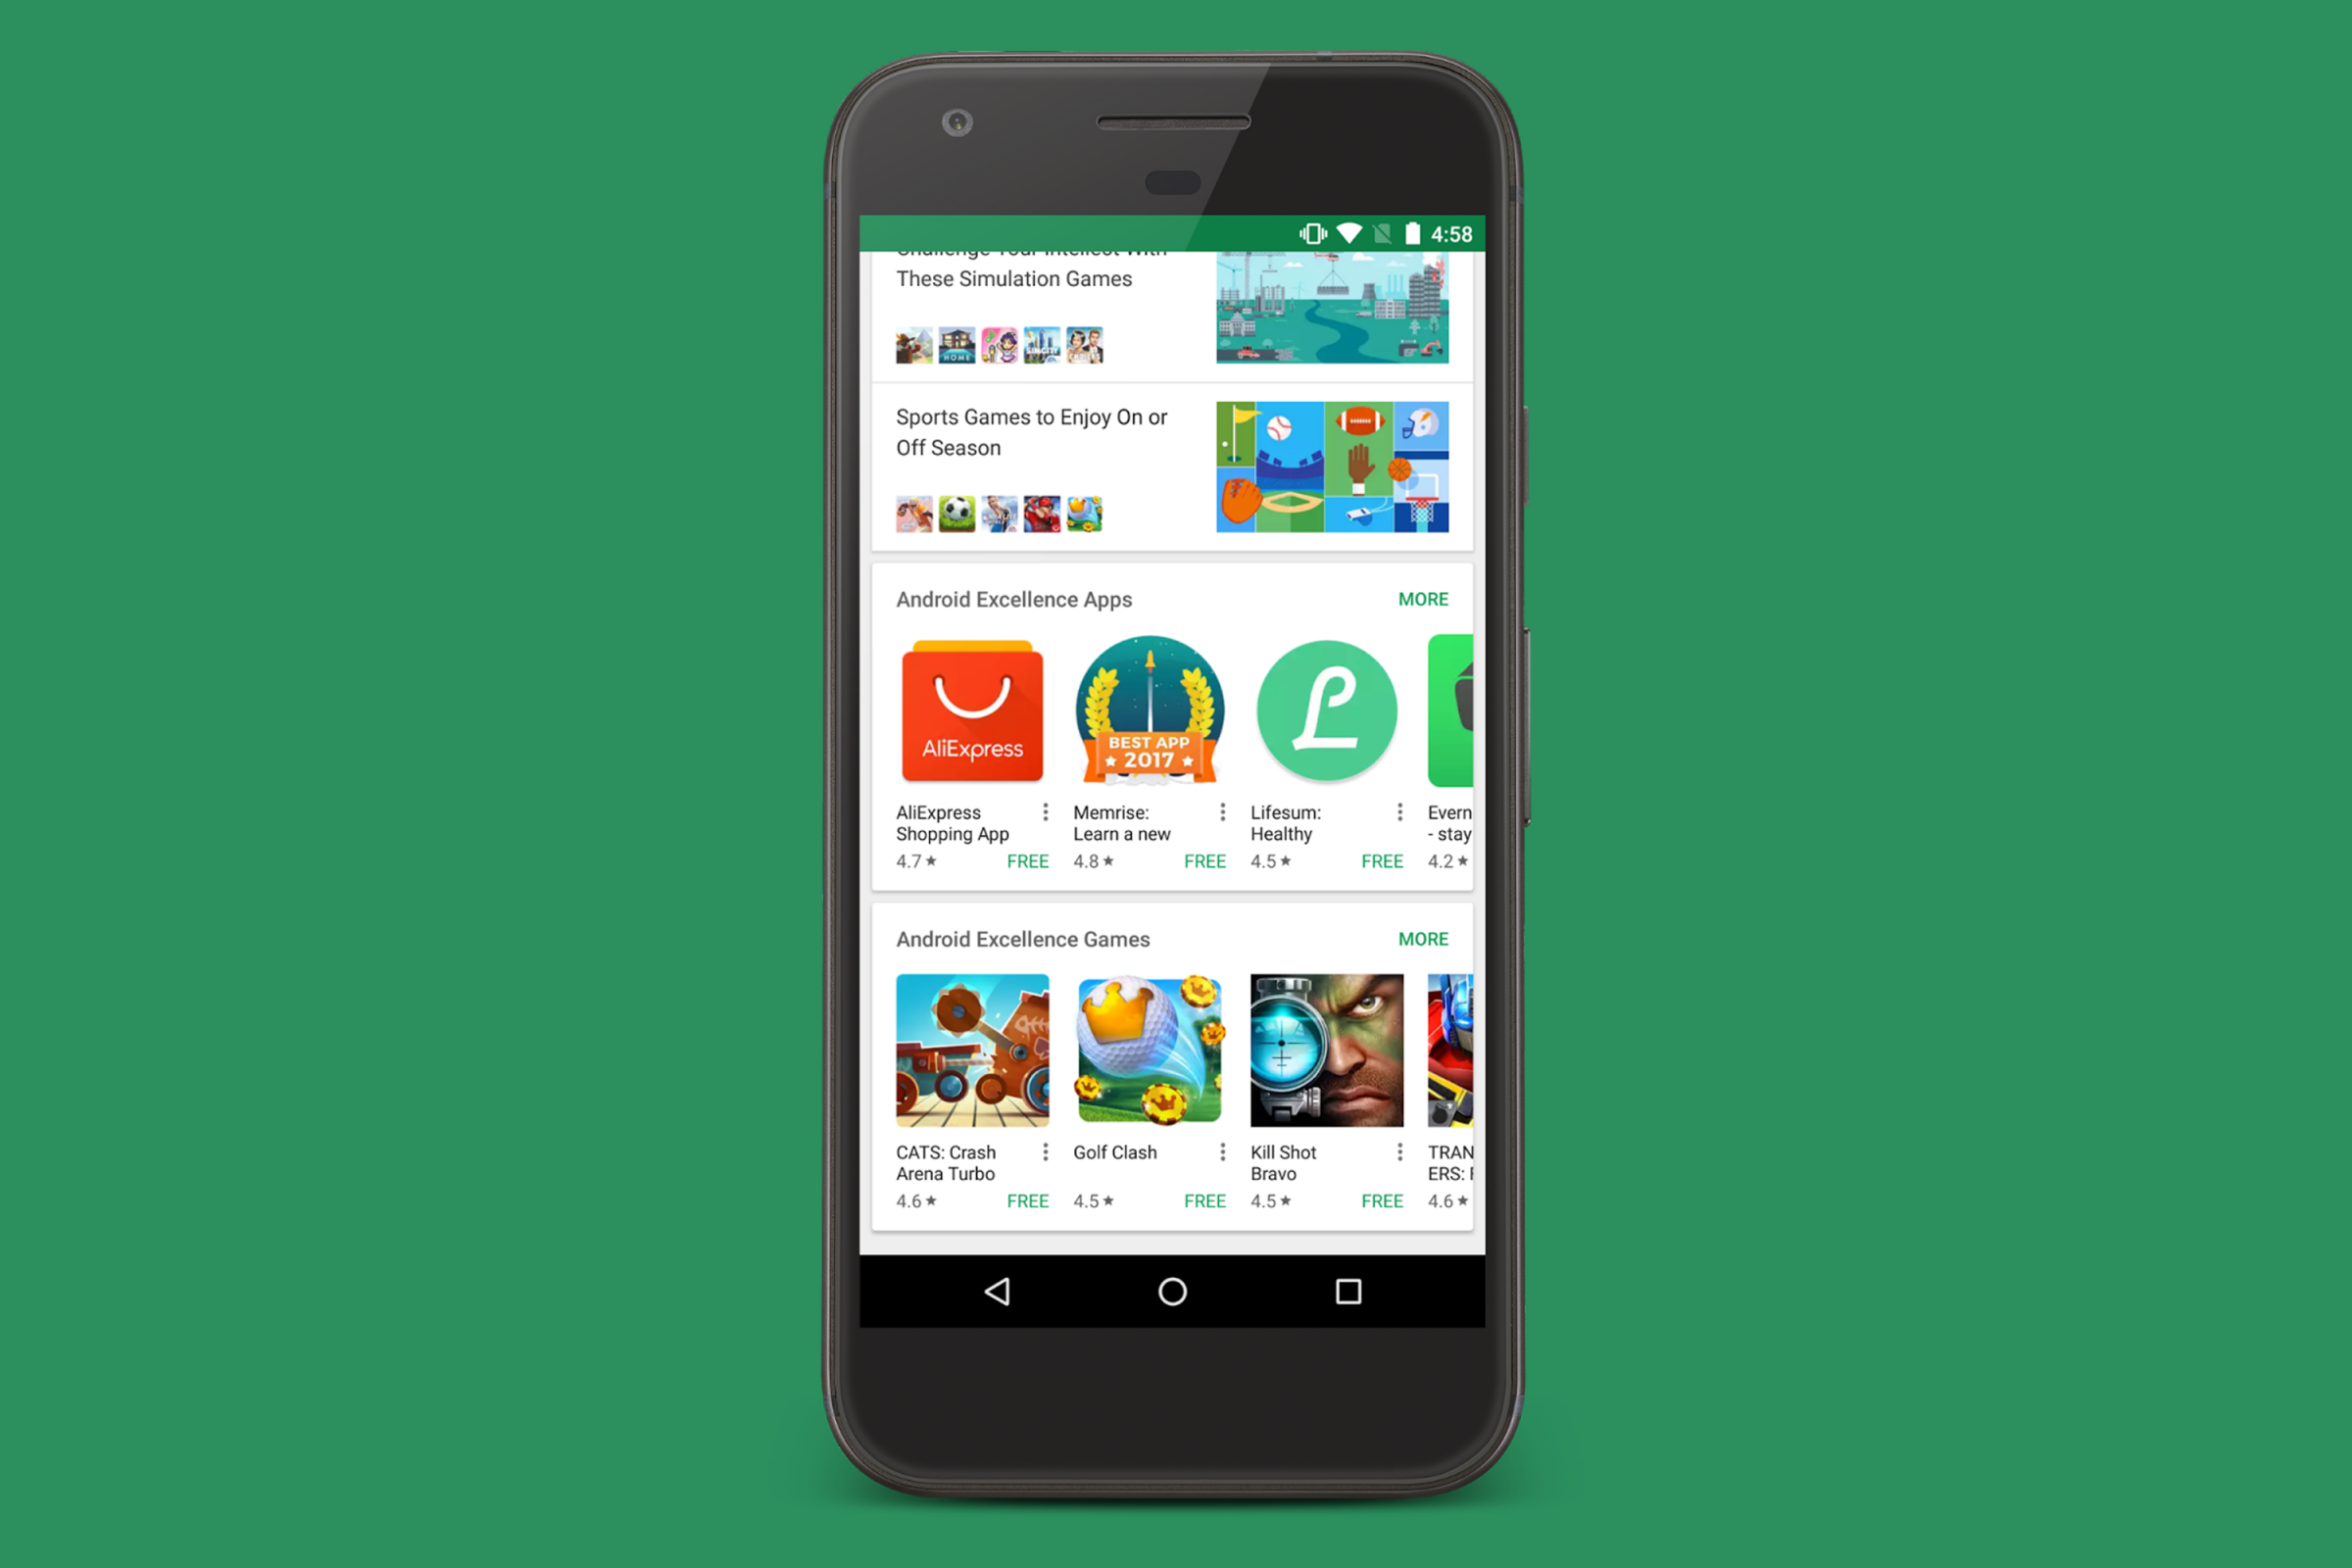 These Are The Best Apps And Games Right Now For Anyone With An Android Android Google Play App